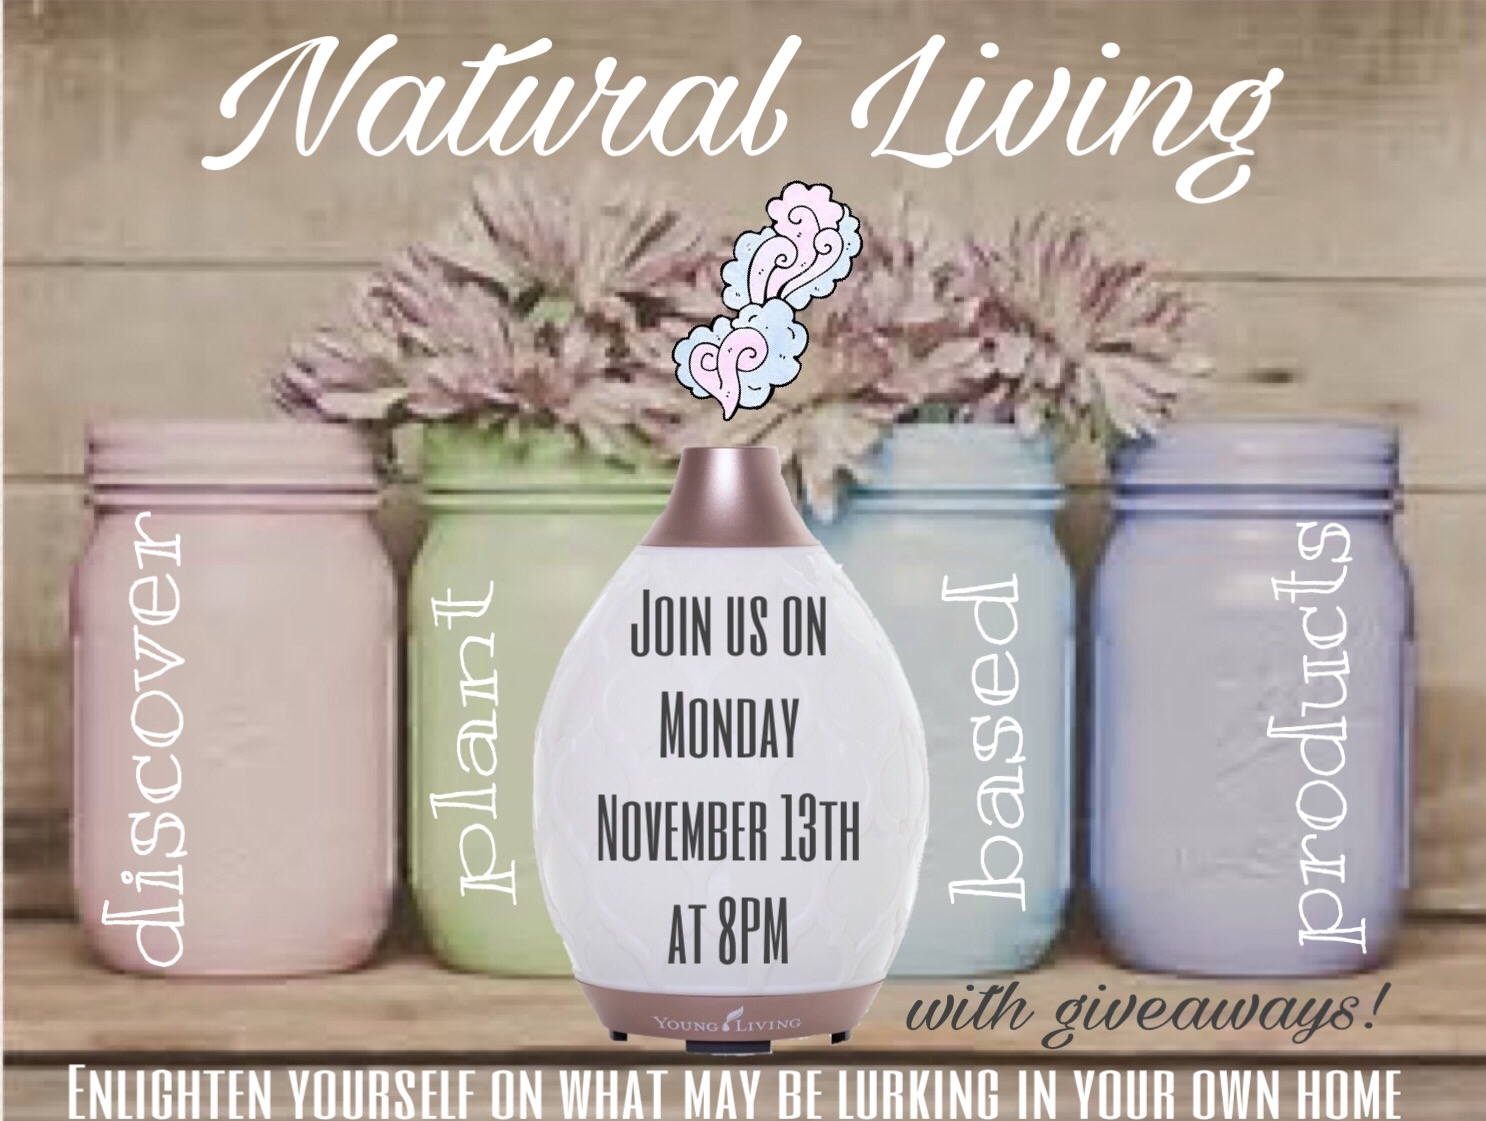 Natural Living with Plant-Based Products ONLINE Event